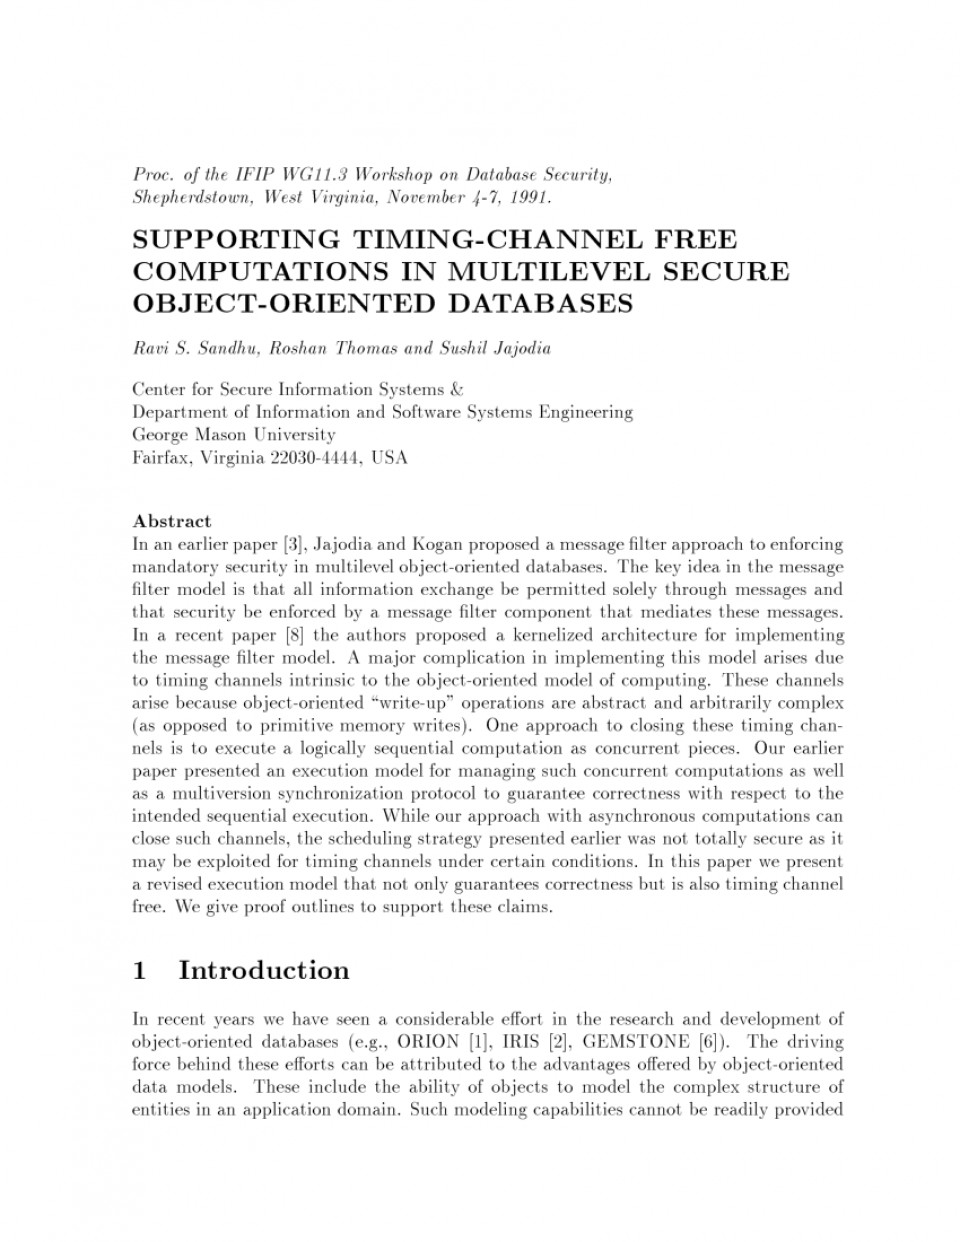 013 Research Paper Database Security Recent Papers Dreaded Pdf 960